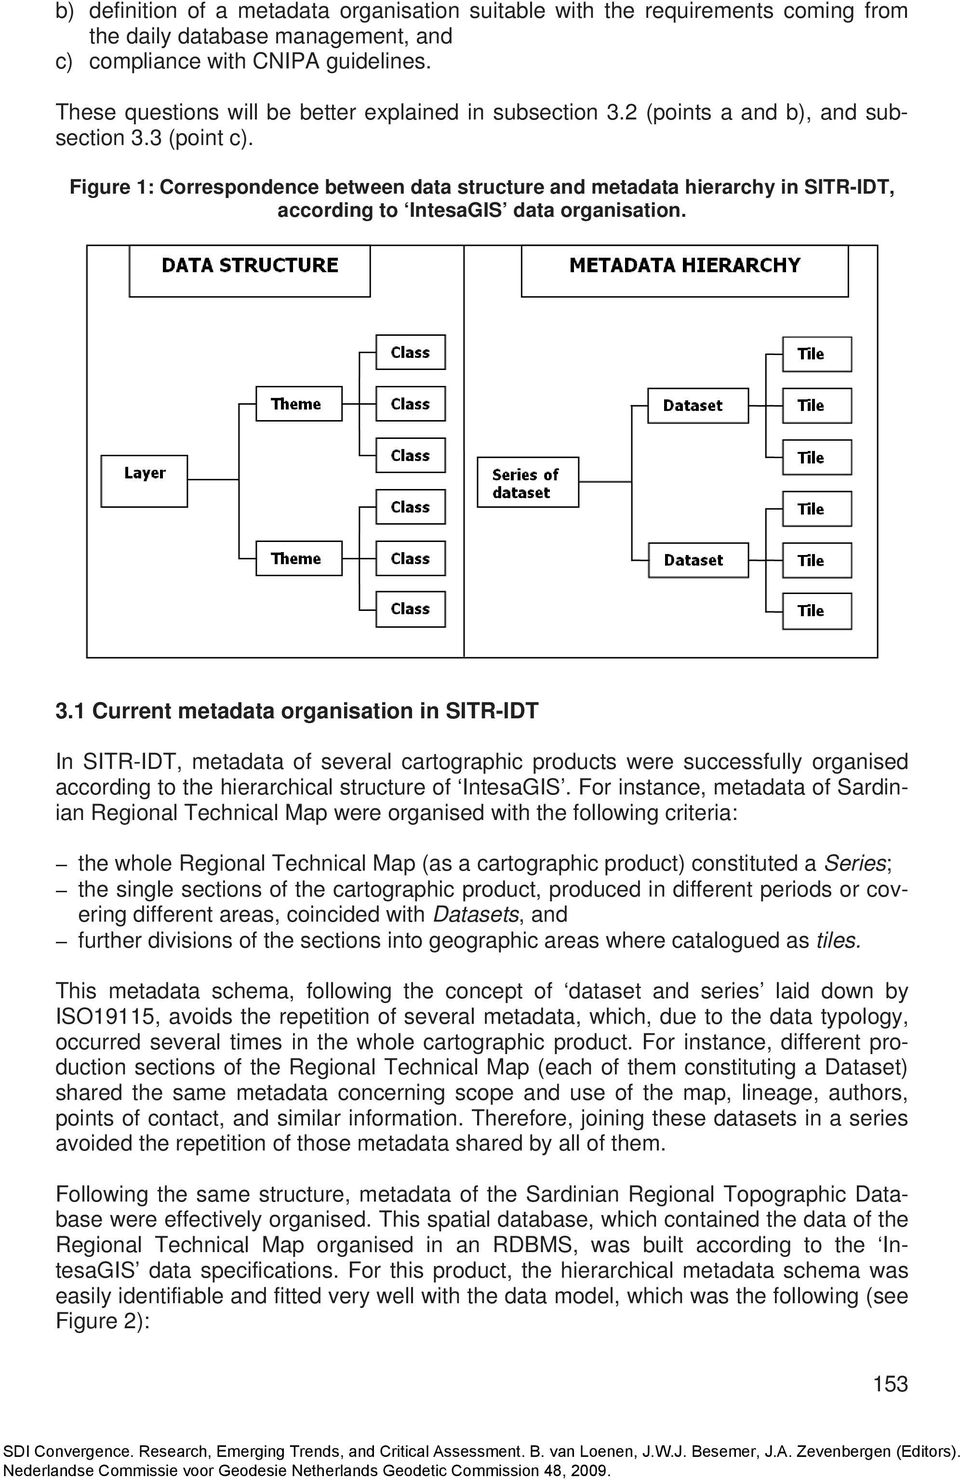 Figure 1: Correspondence between data structure and metadata hierarchy in SITR-IDT, according to IntesaGIS data organisation. 3.